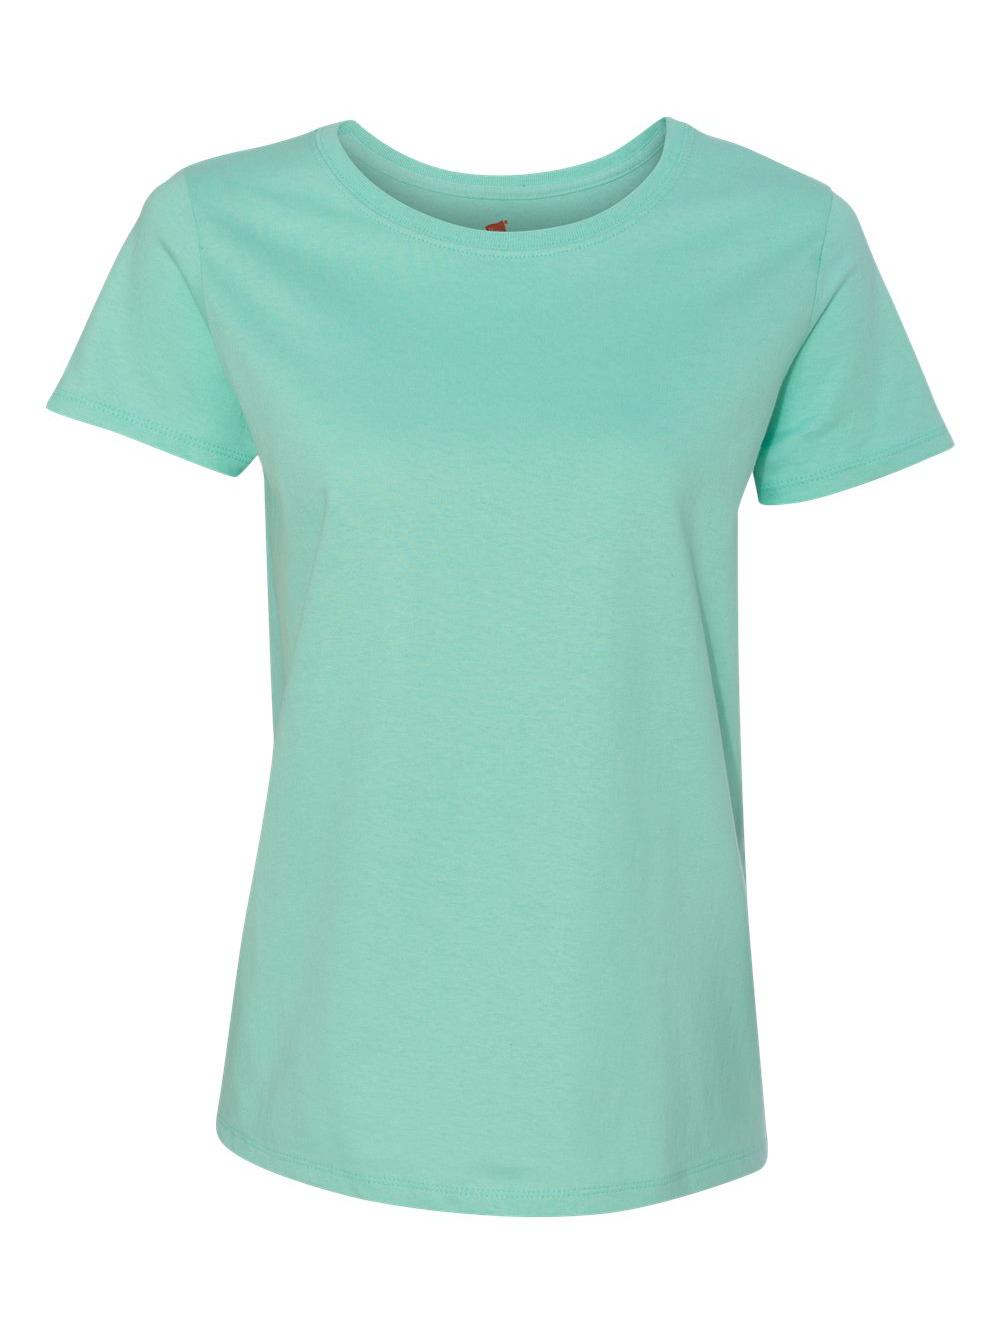 51a91bc1 Hanes Women's Relaxed Fit Jersey ComfortSoft Crewneck T-shirt 5680 3x Clean  MINT. About this product. Stock photo; Picture 1 of 4; Picture 2 of 4 ...